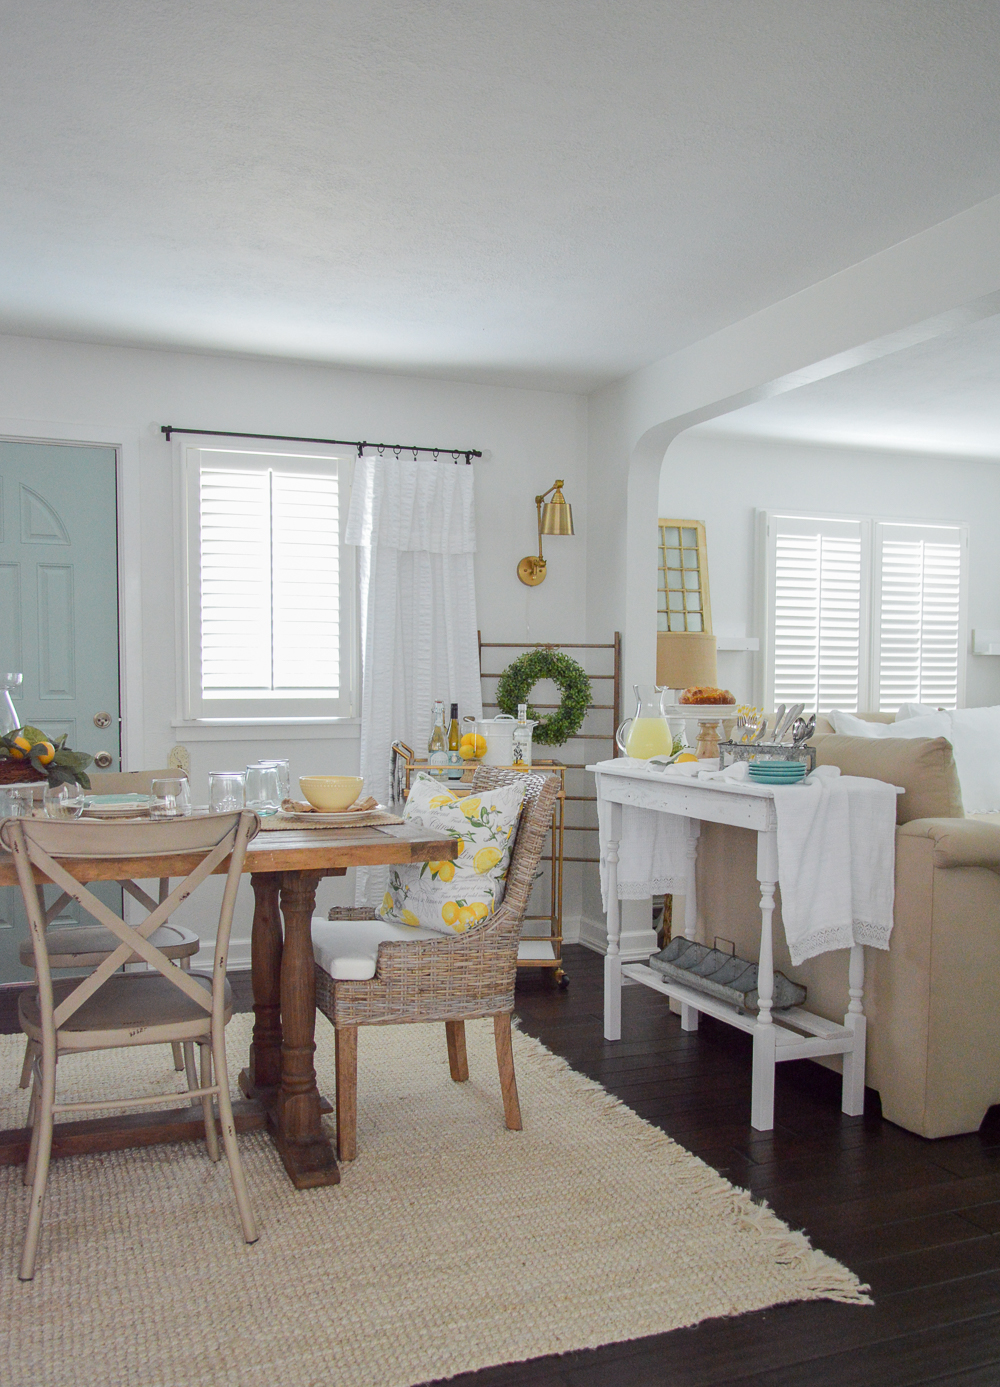 Summer cottage decorating. Sisal rug, wood floors, lemon tablescape.